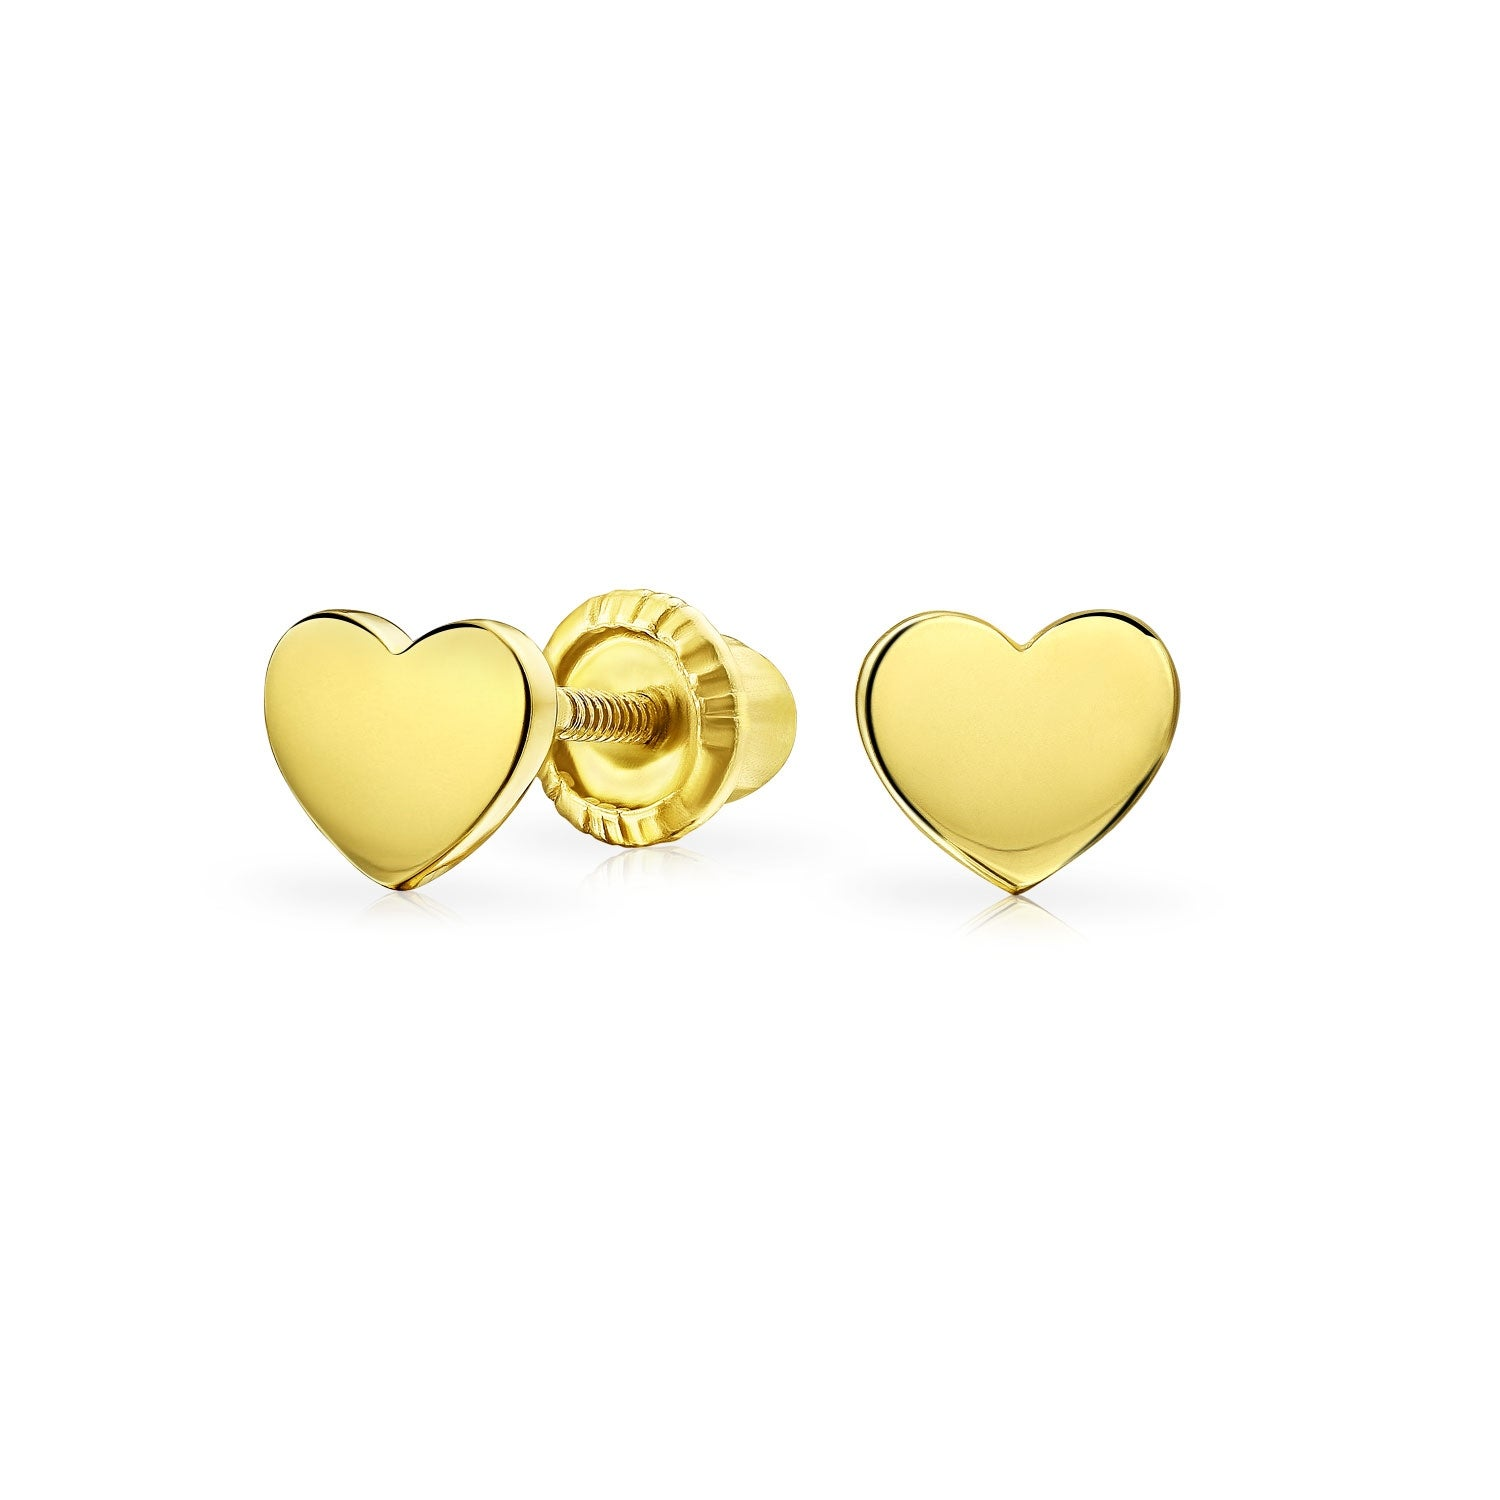 84c4f11da Shop Tiny Minimalist Heart Shaped Stud Earrings For Women For Teen For  Girlfriend Real 14K Yellow Gold Screwback - On Sale - Free Shipping On  Orders Over ...